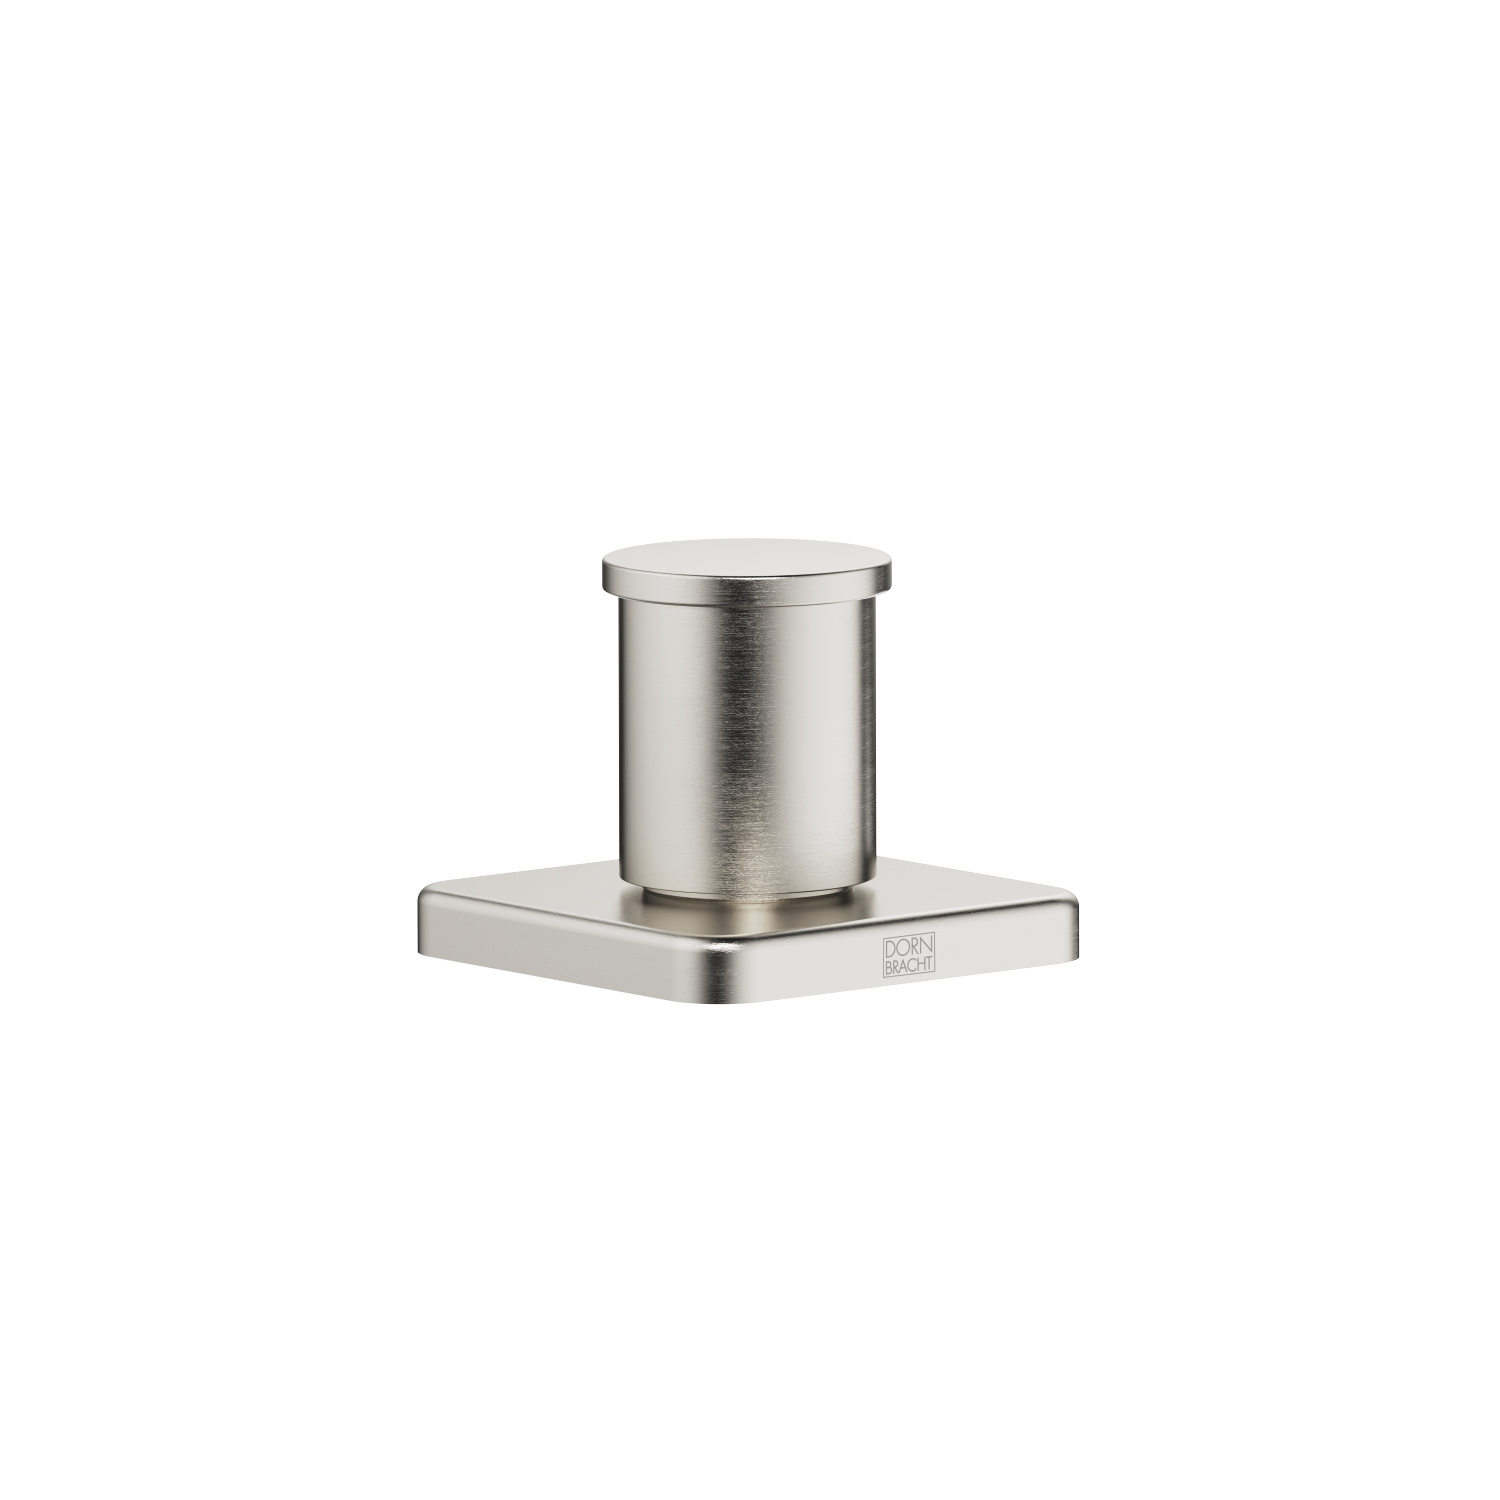 Two-way diverter for bath rim or tile edge installation - platinum matt